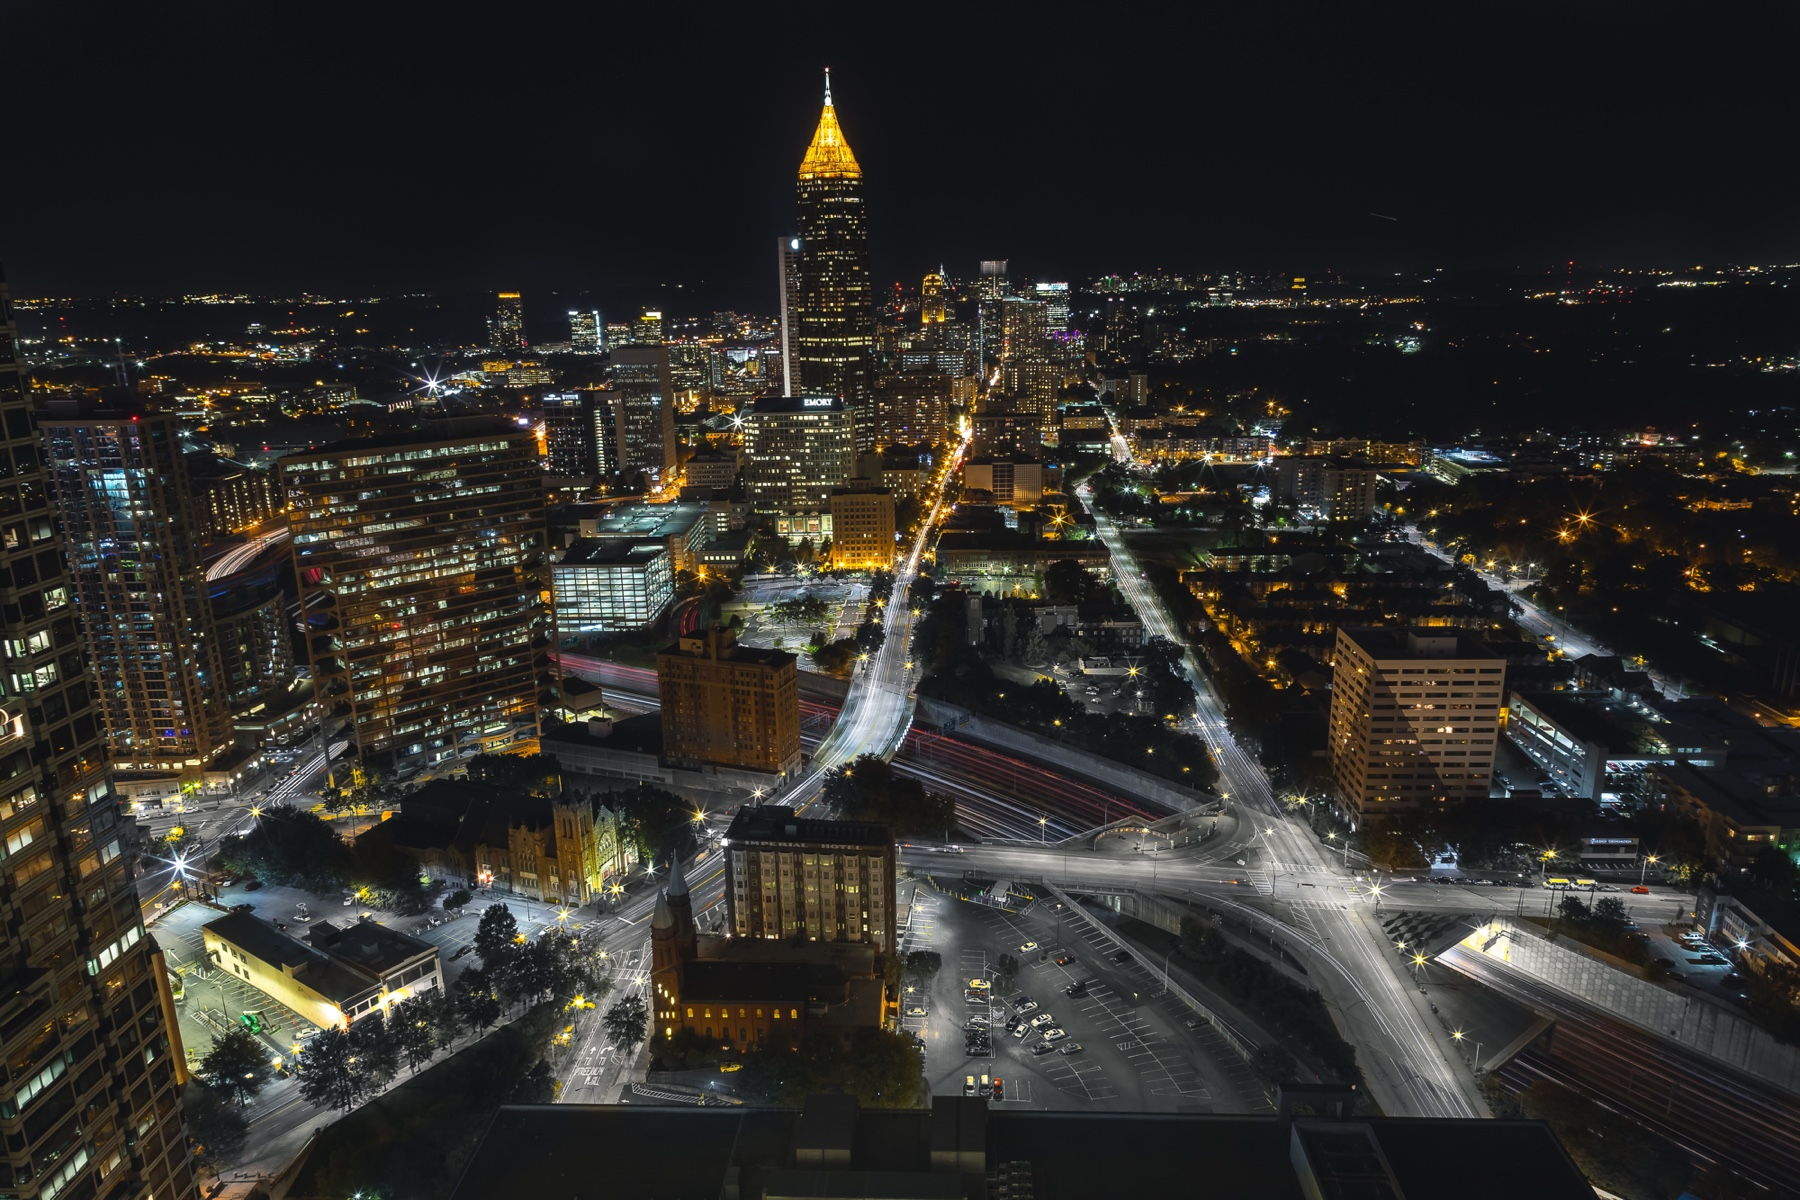 Ralph Selected as One of the 100 Most Influential Atlantans of 2015